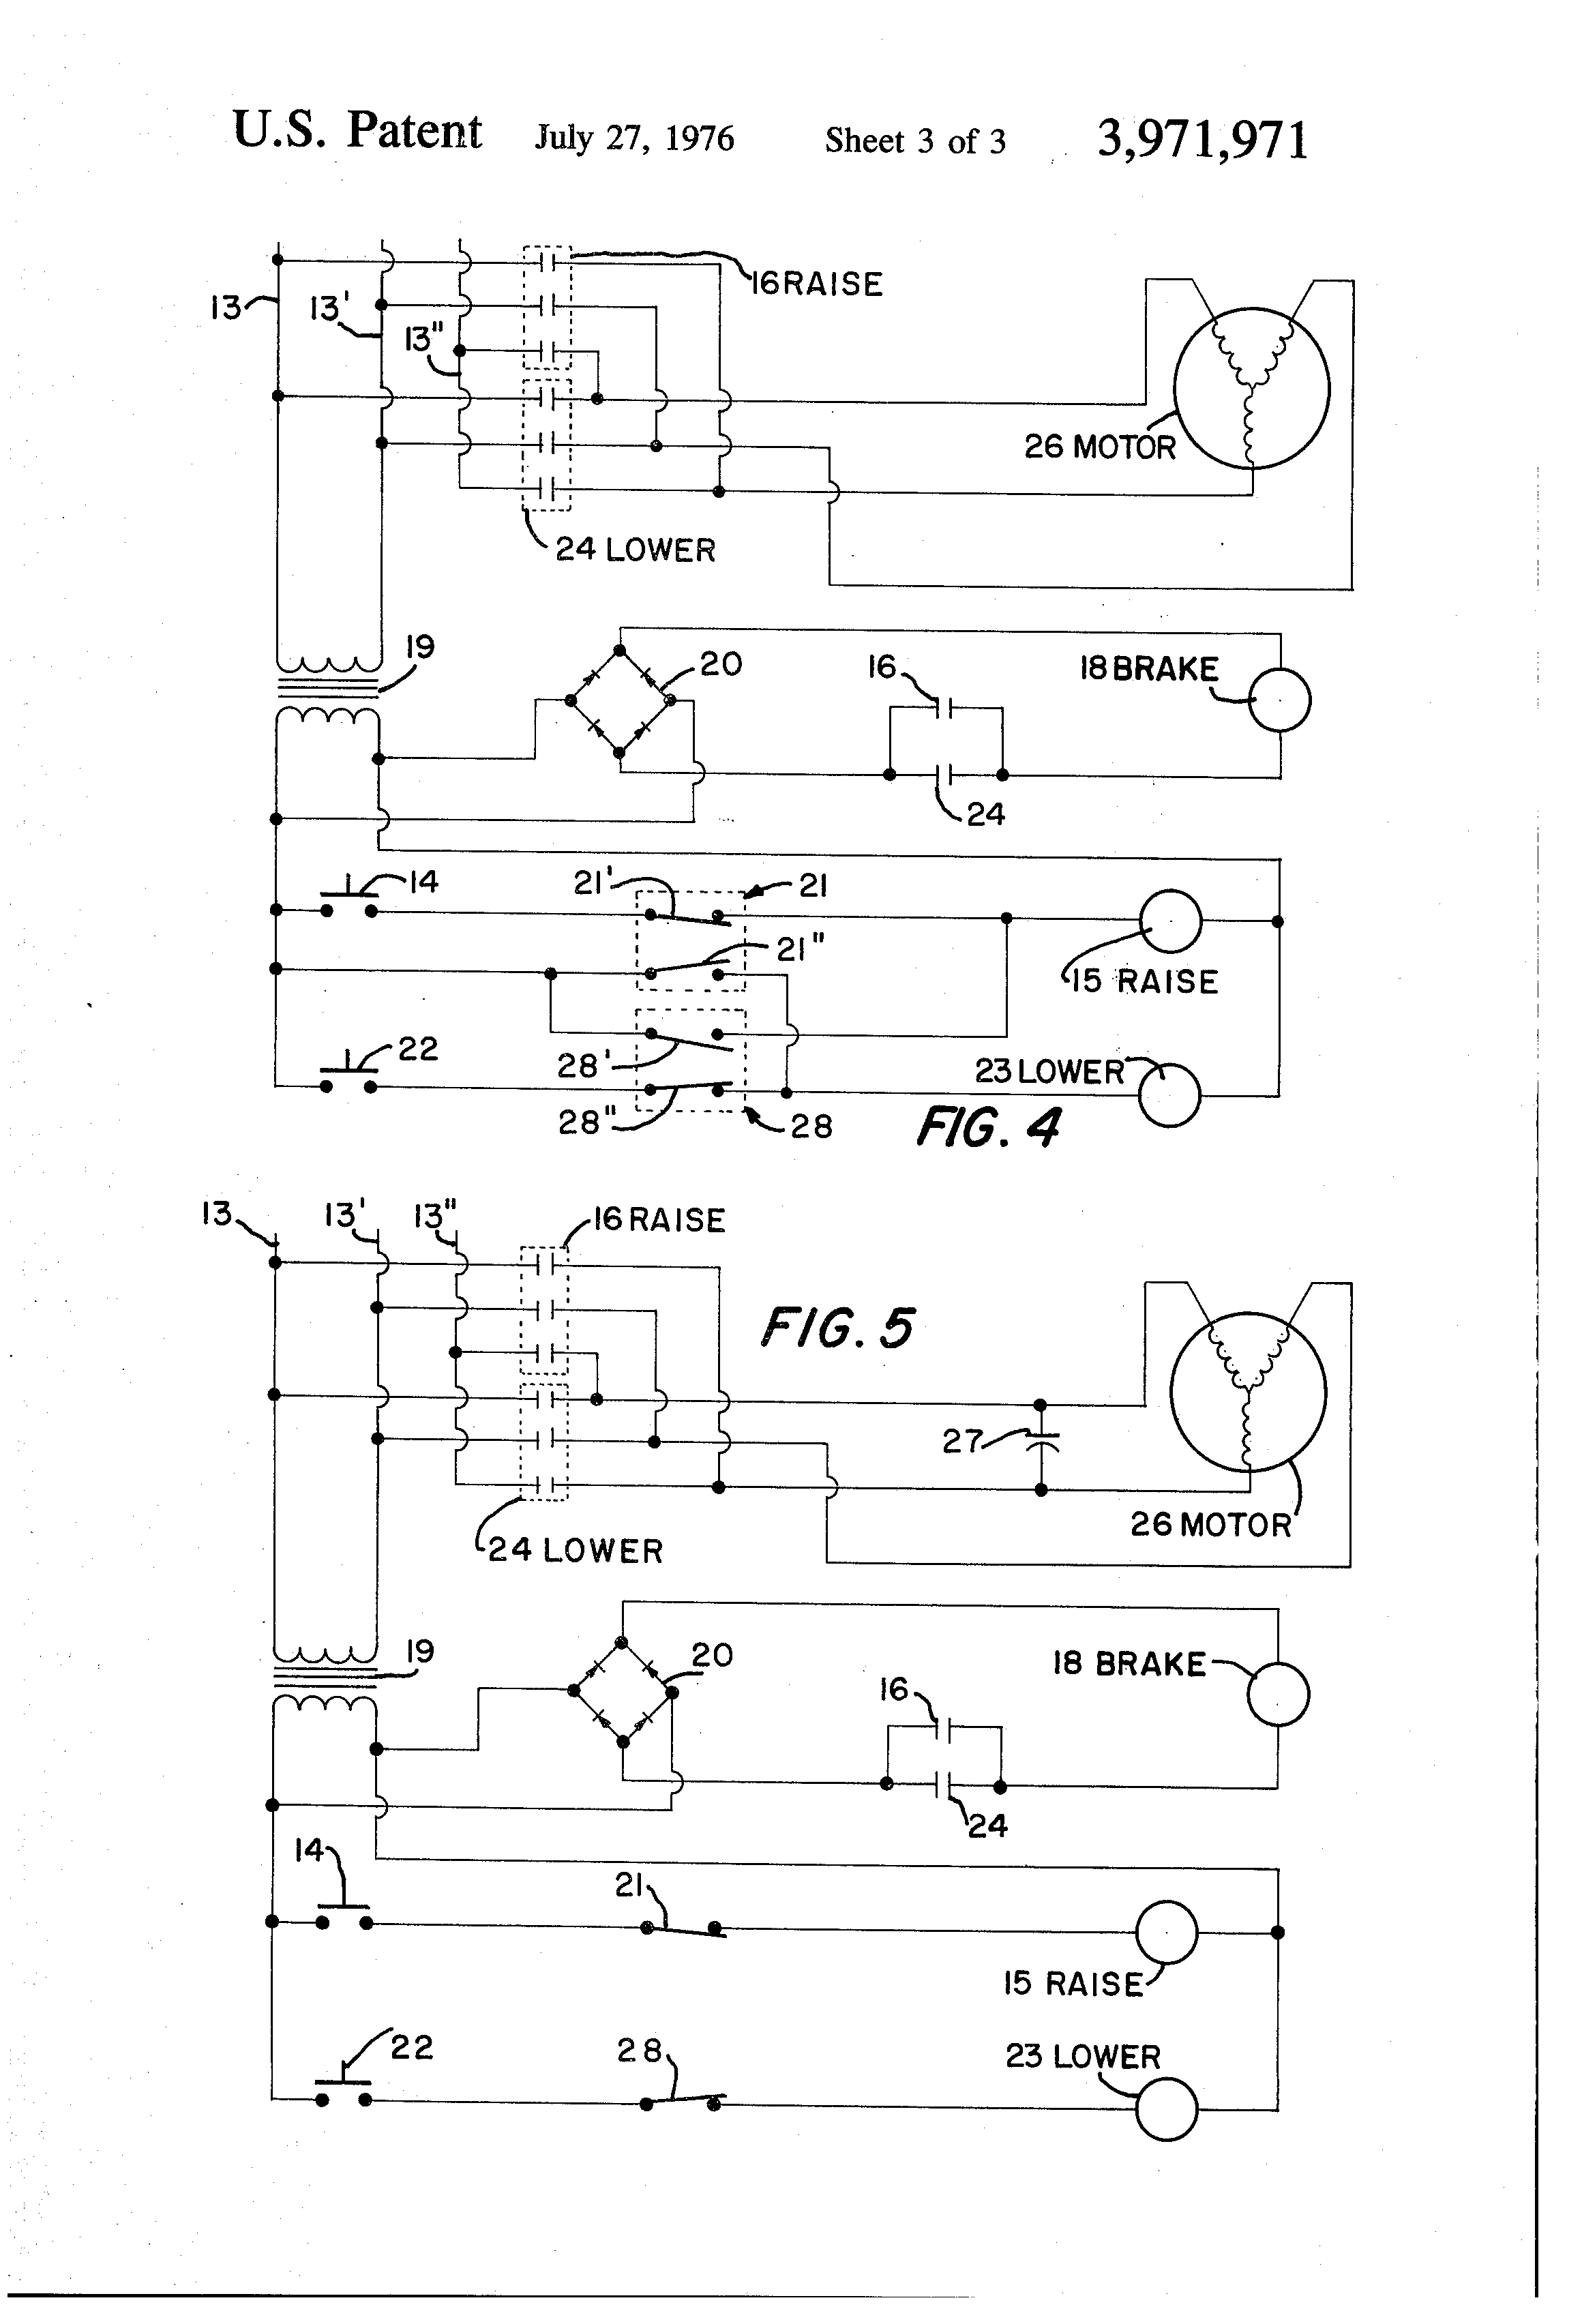 US3971971 3 demag hoist wiring diagram cm hoist wiring diagram \u2022 wiring hitachi electric chain hoist wiring diagram at bayanpartner.co